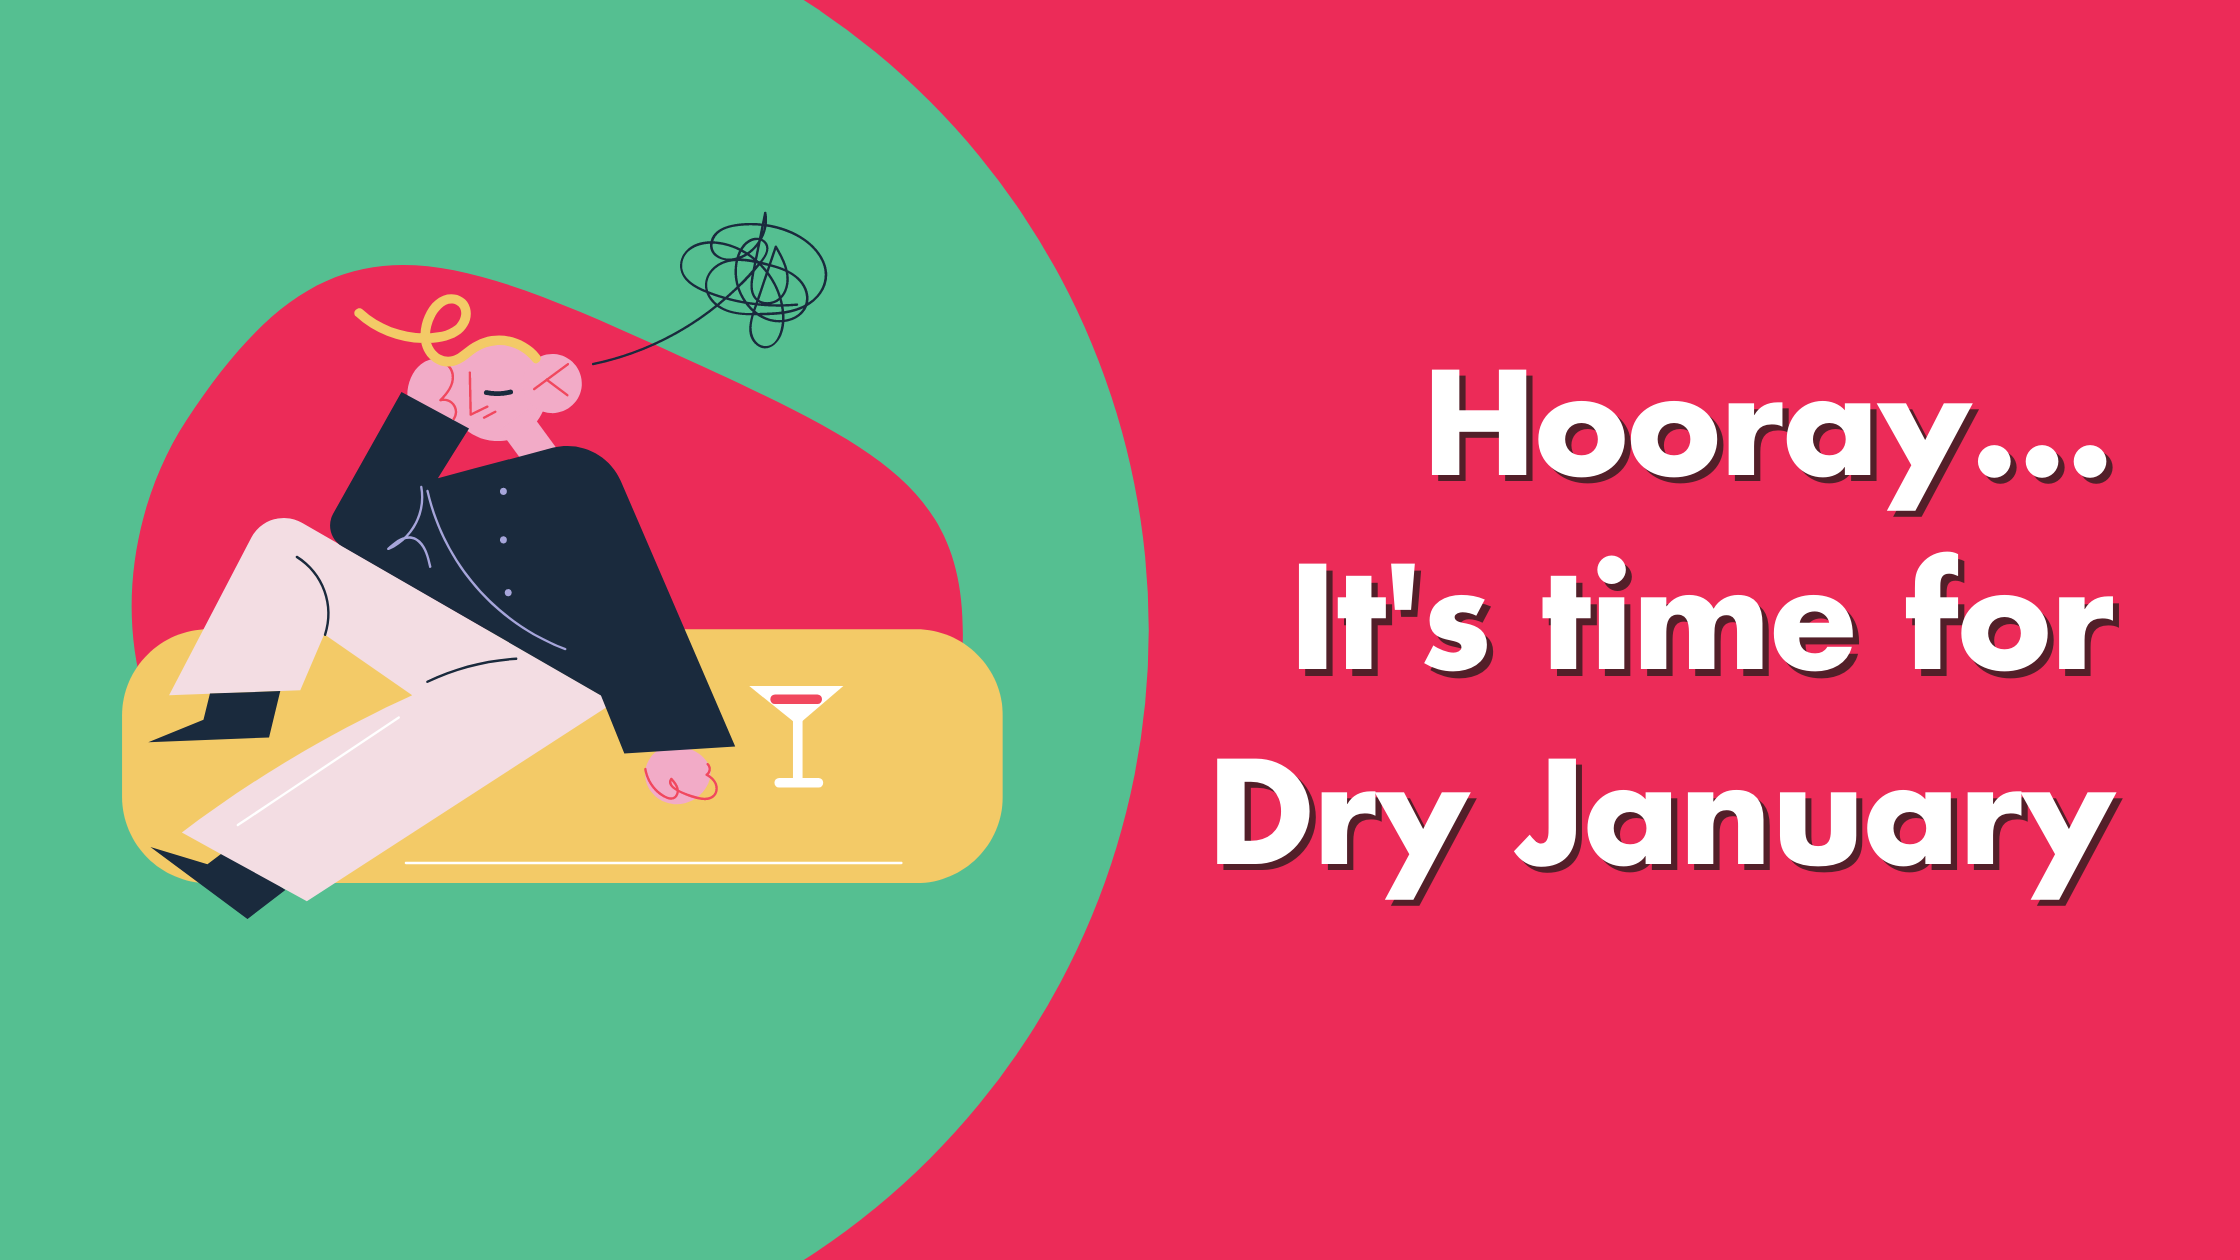 Hooray...It's Time For Dry January